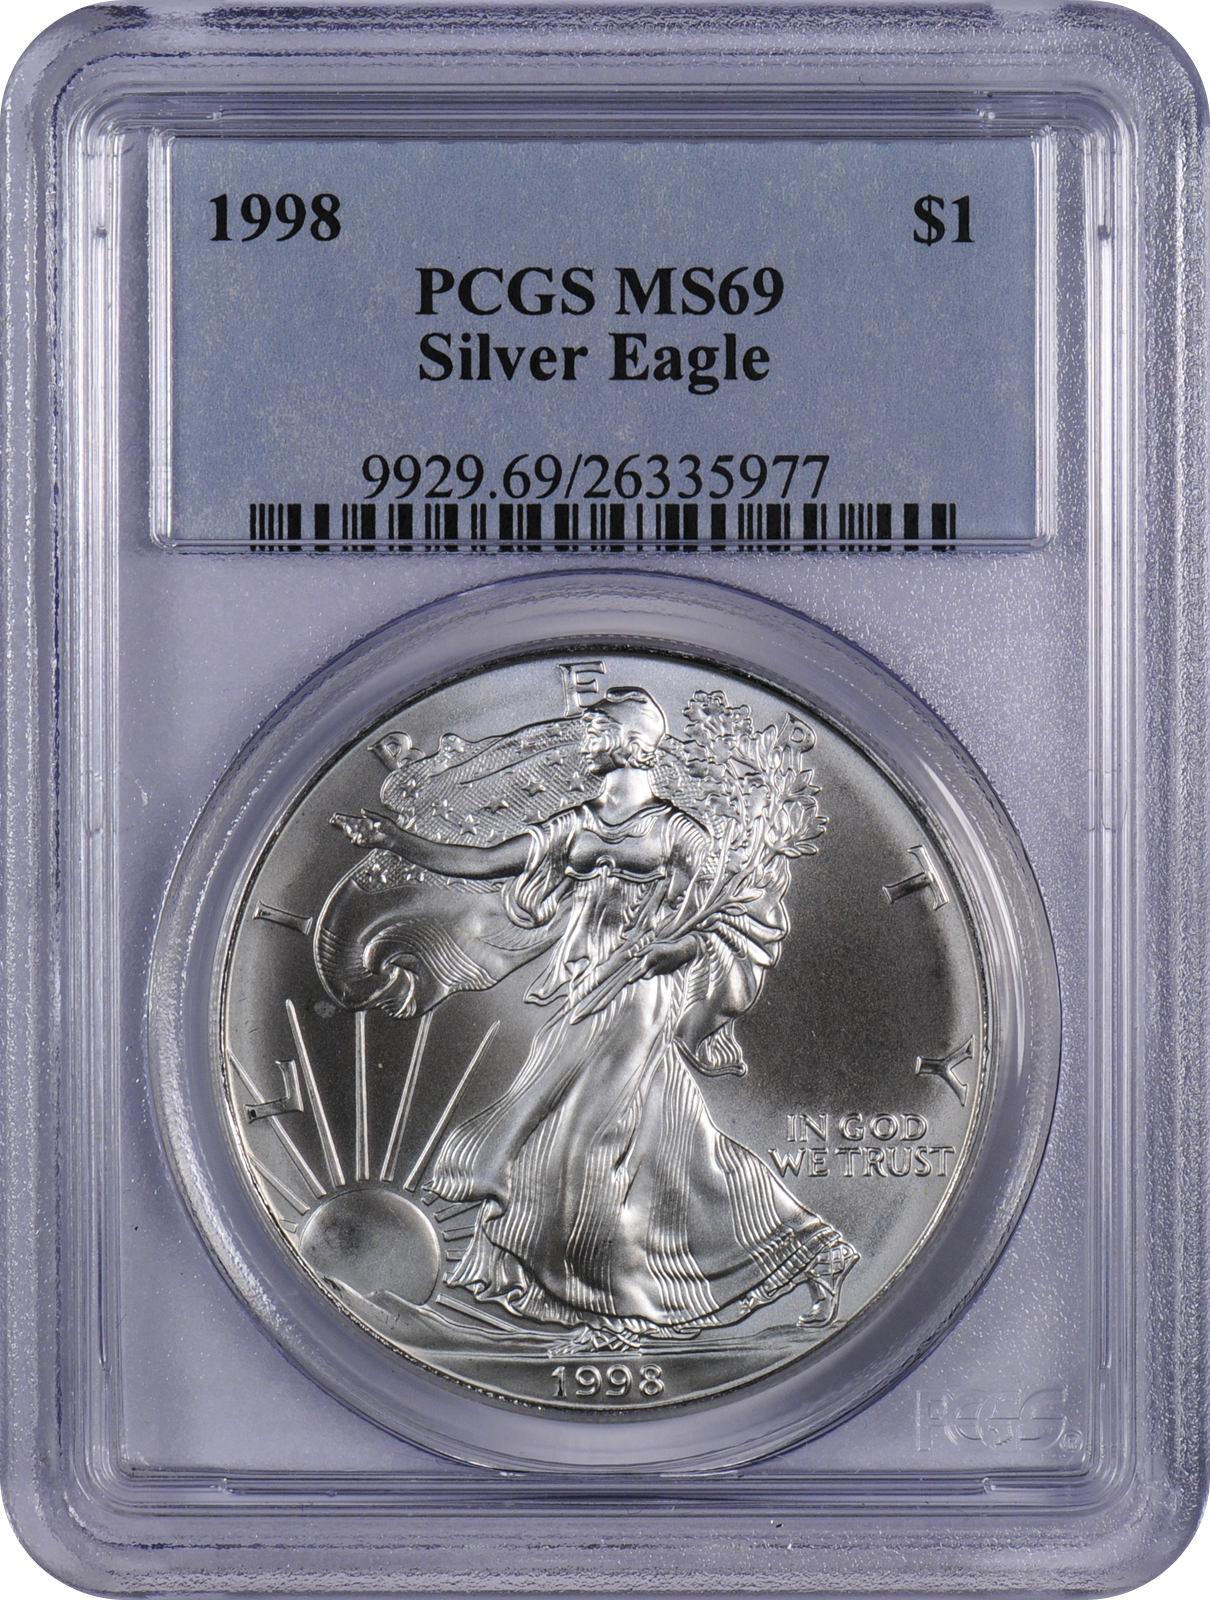 This 1998 Pcgs Ms69 Silver Eagle Is A Popular Coin For Investors And Collectors Alike This Coin Has A Face Value Of Silver Eagles Silver Bullion Coins Silver